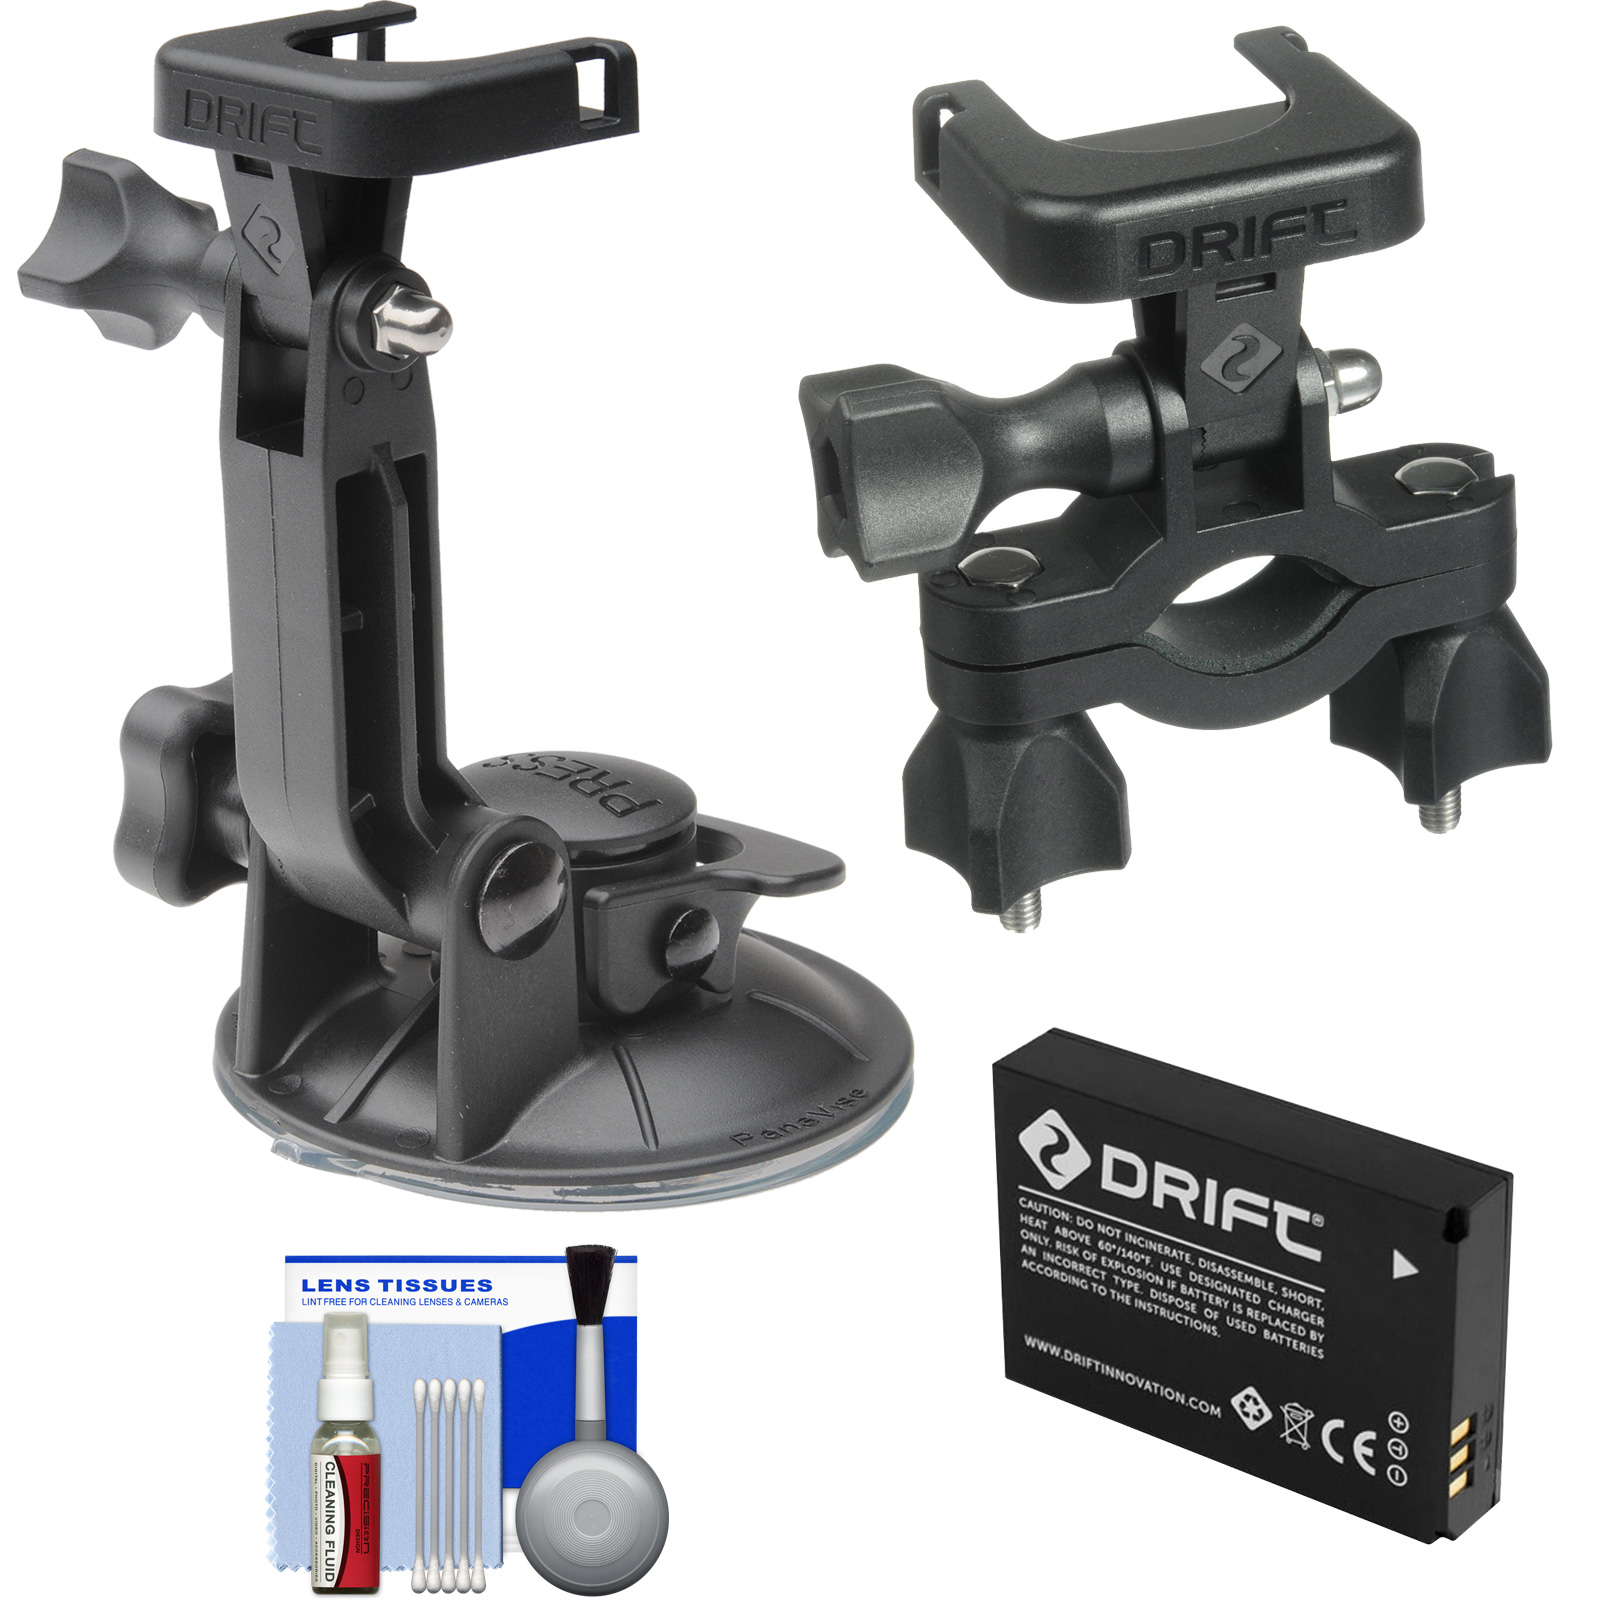 Drift Innovation Suction Cup Mount with Handlebar Bike Mount + Battery + Accessory Kit for HD Ghost & Ghost-S Action Camcorders